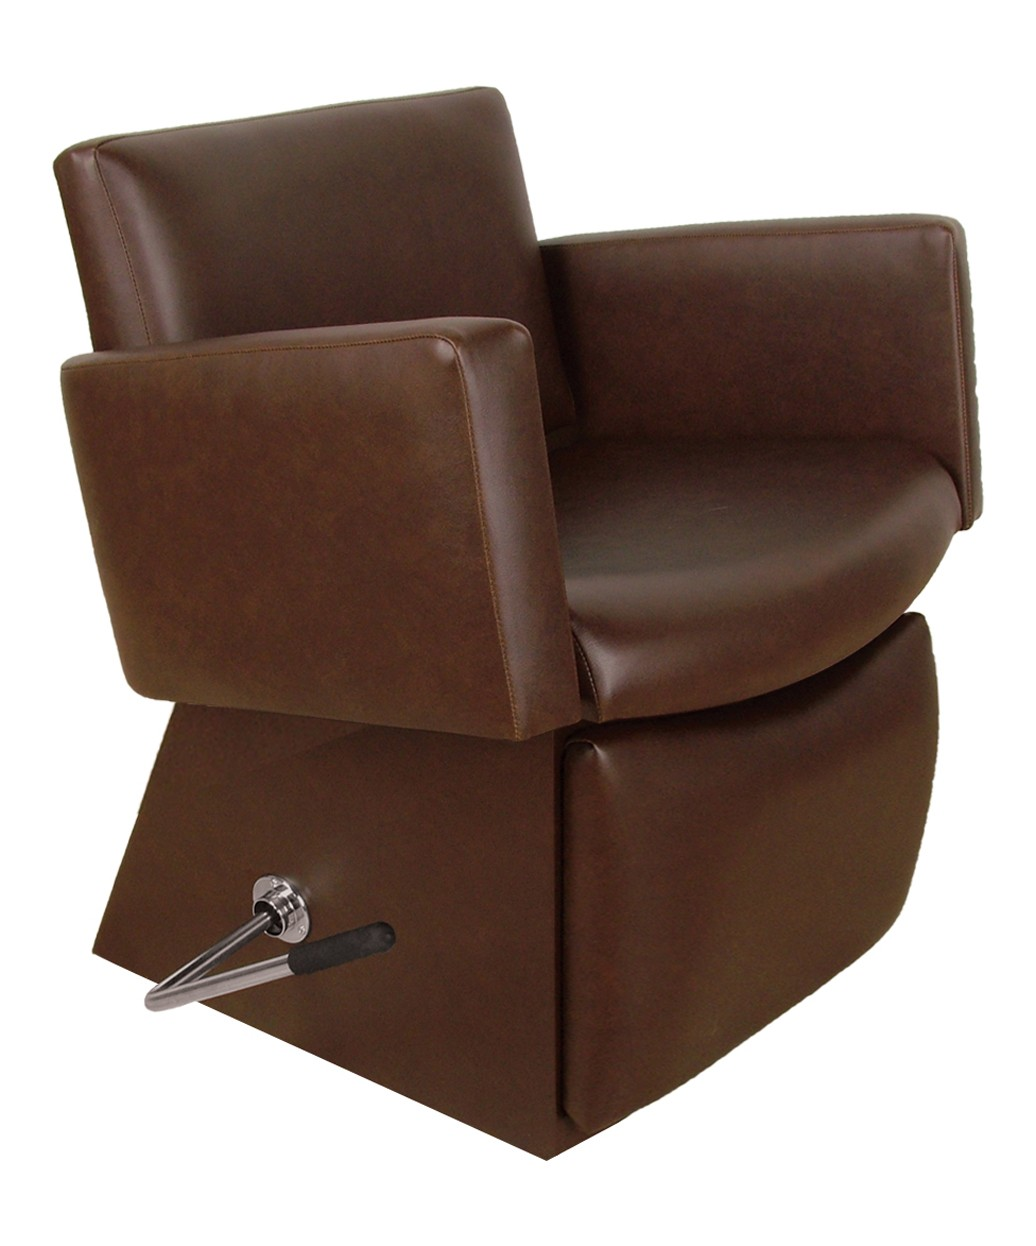 Collins 6950L Cigno Shampoo Chair w/ Kick Out Legrest